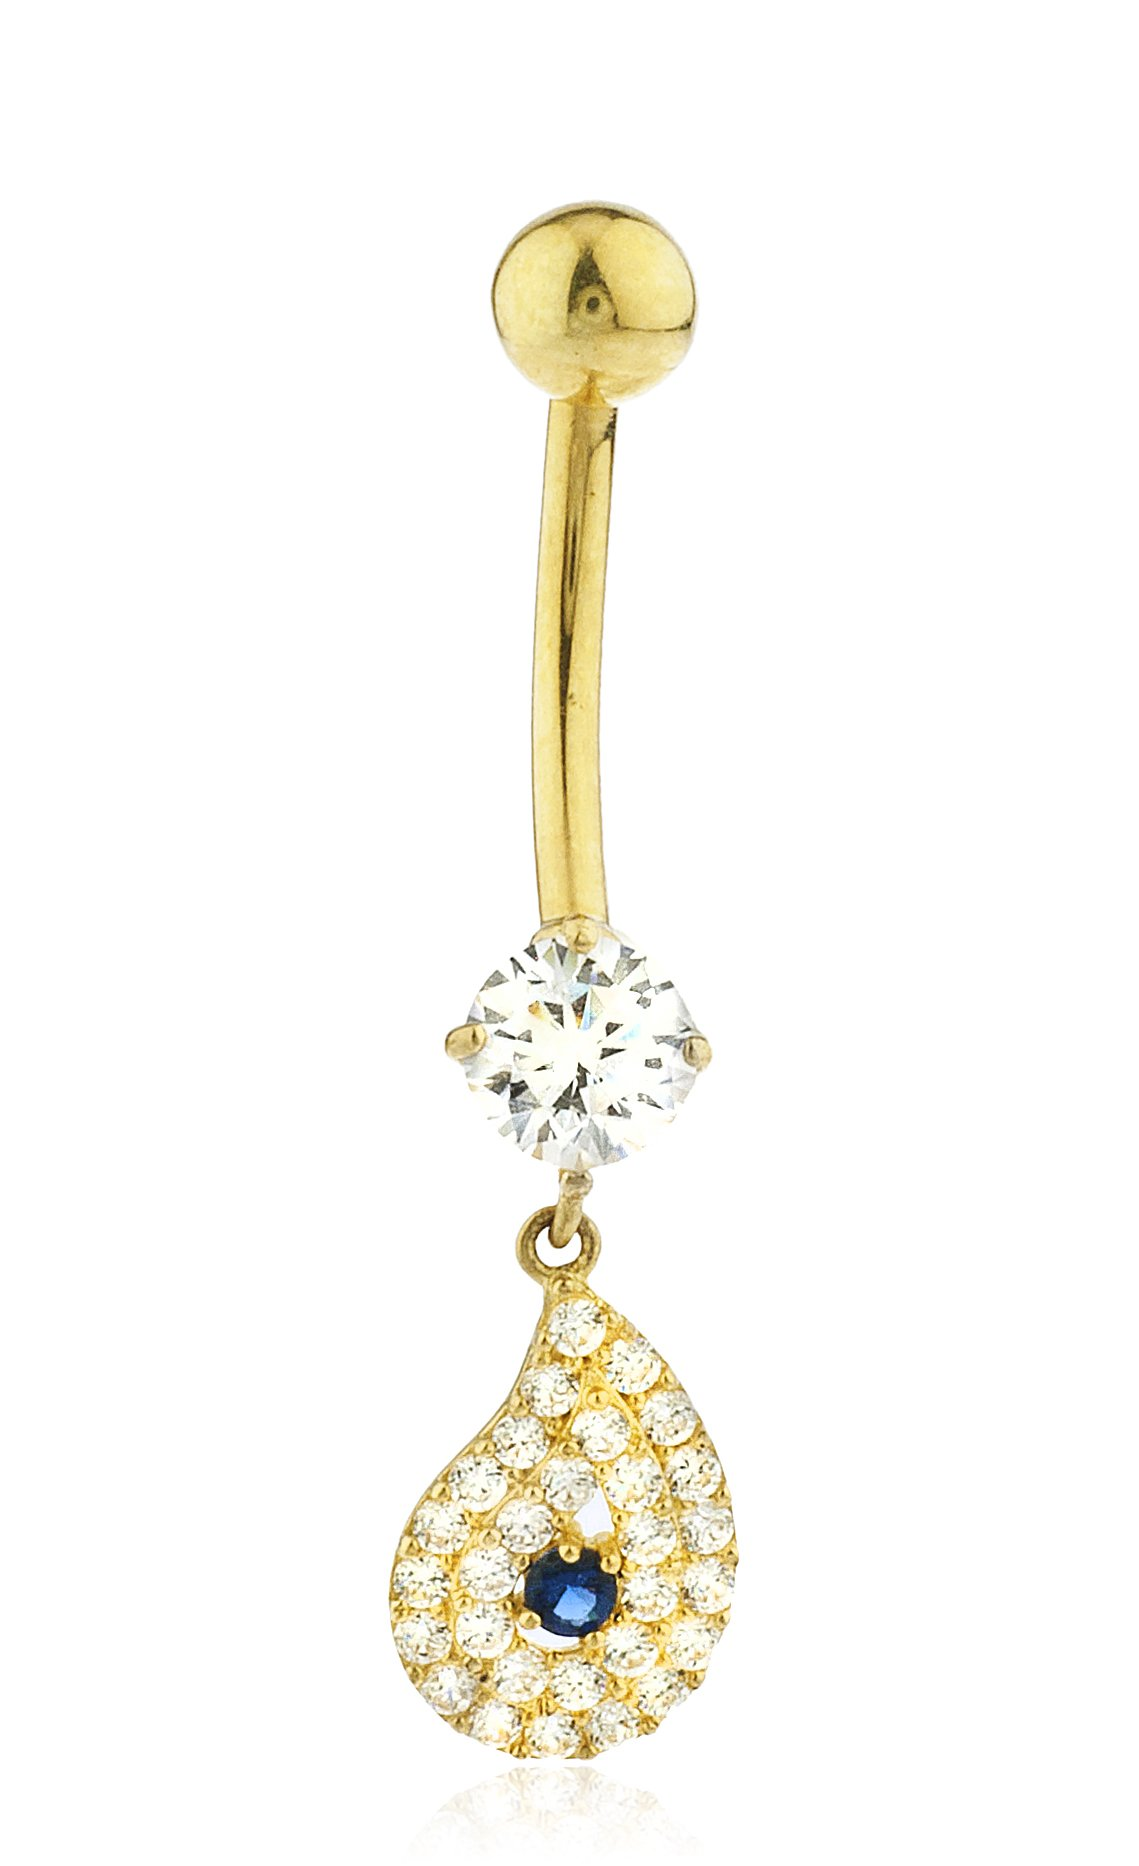 JOTW 10k Yellow Gold Belly Button Ring Iced Out Dangling Tear Drop Cz Stones (GO-1478) by JOTW